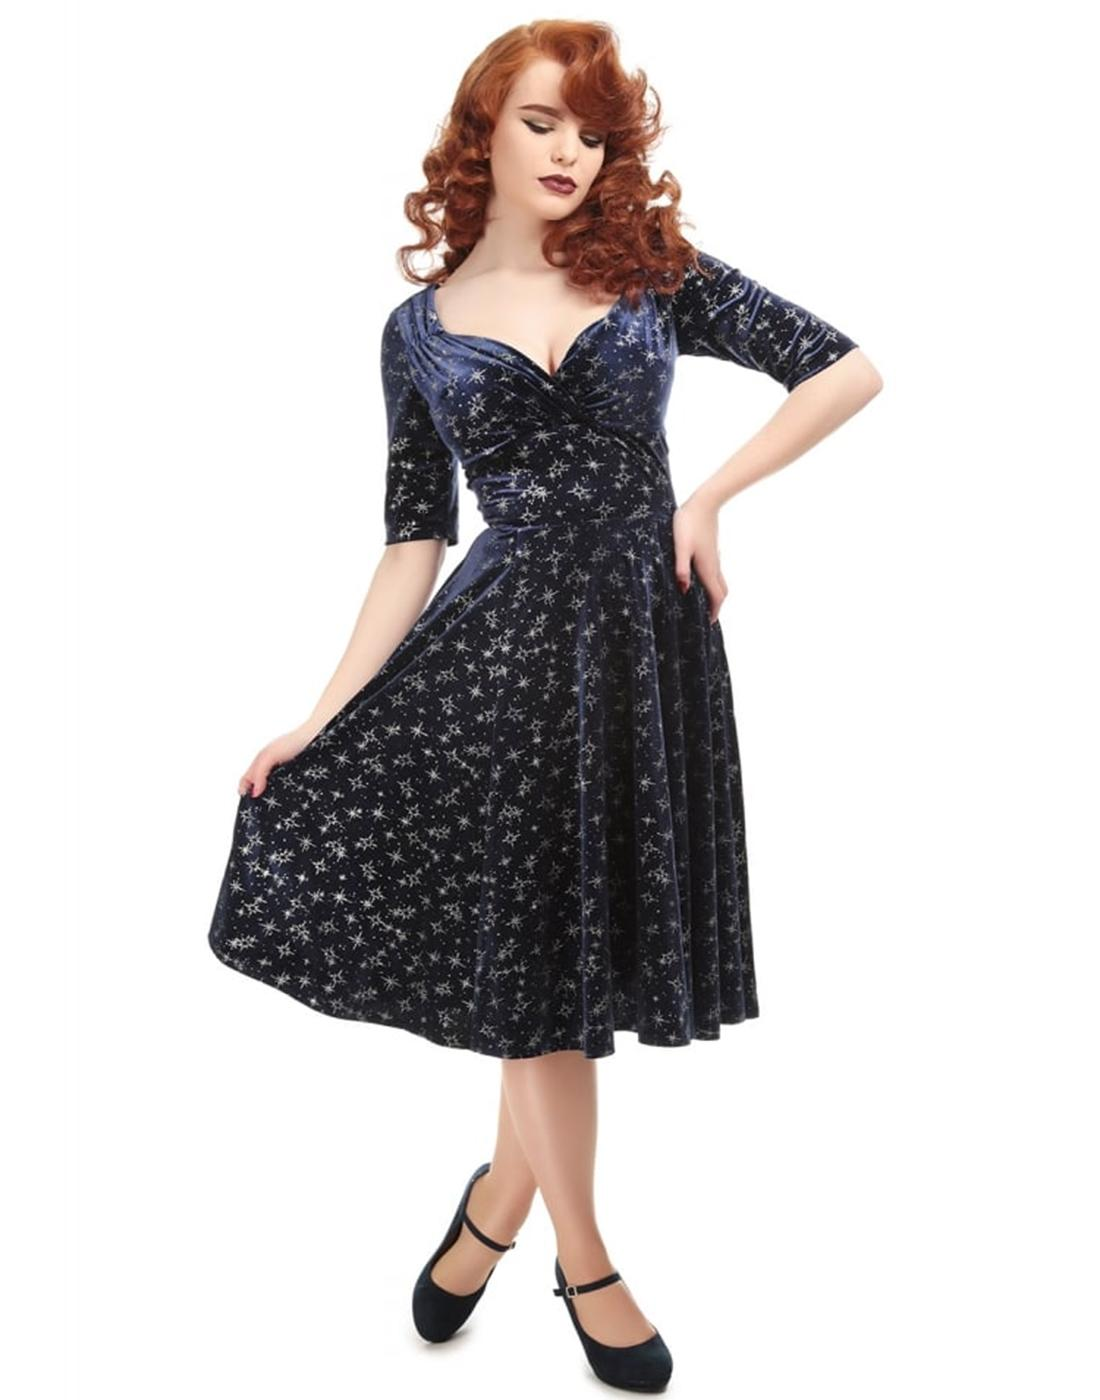 Trixie Velvet COLLECTIF Retro Vintage Doll Dress